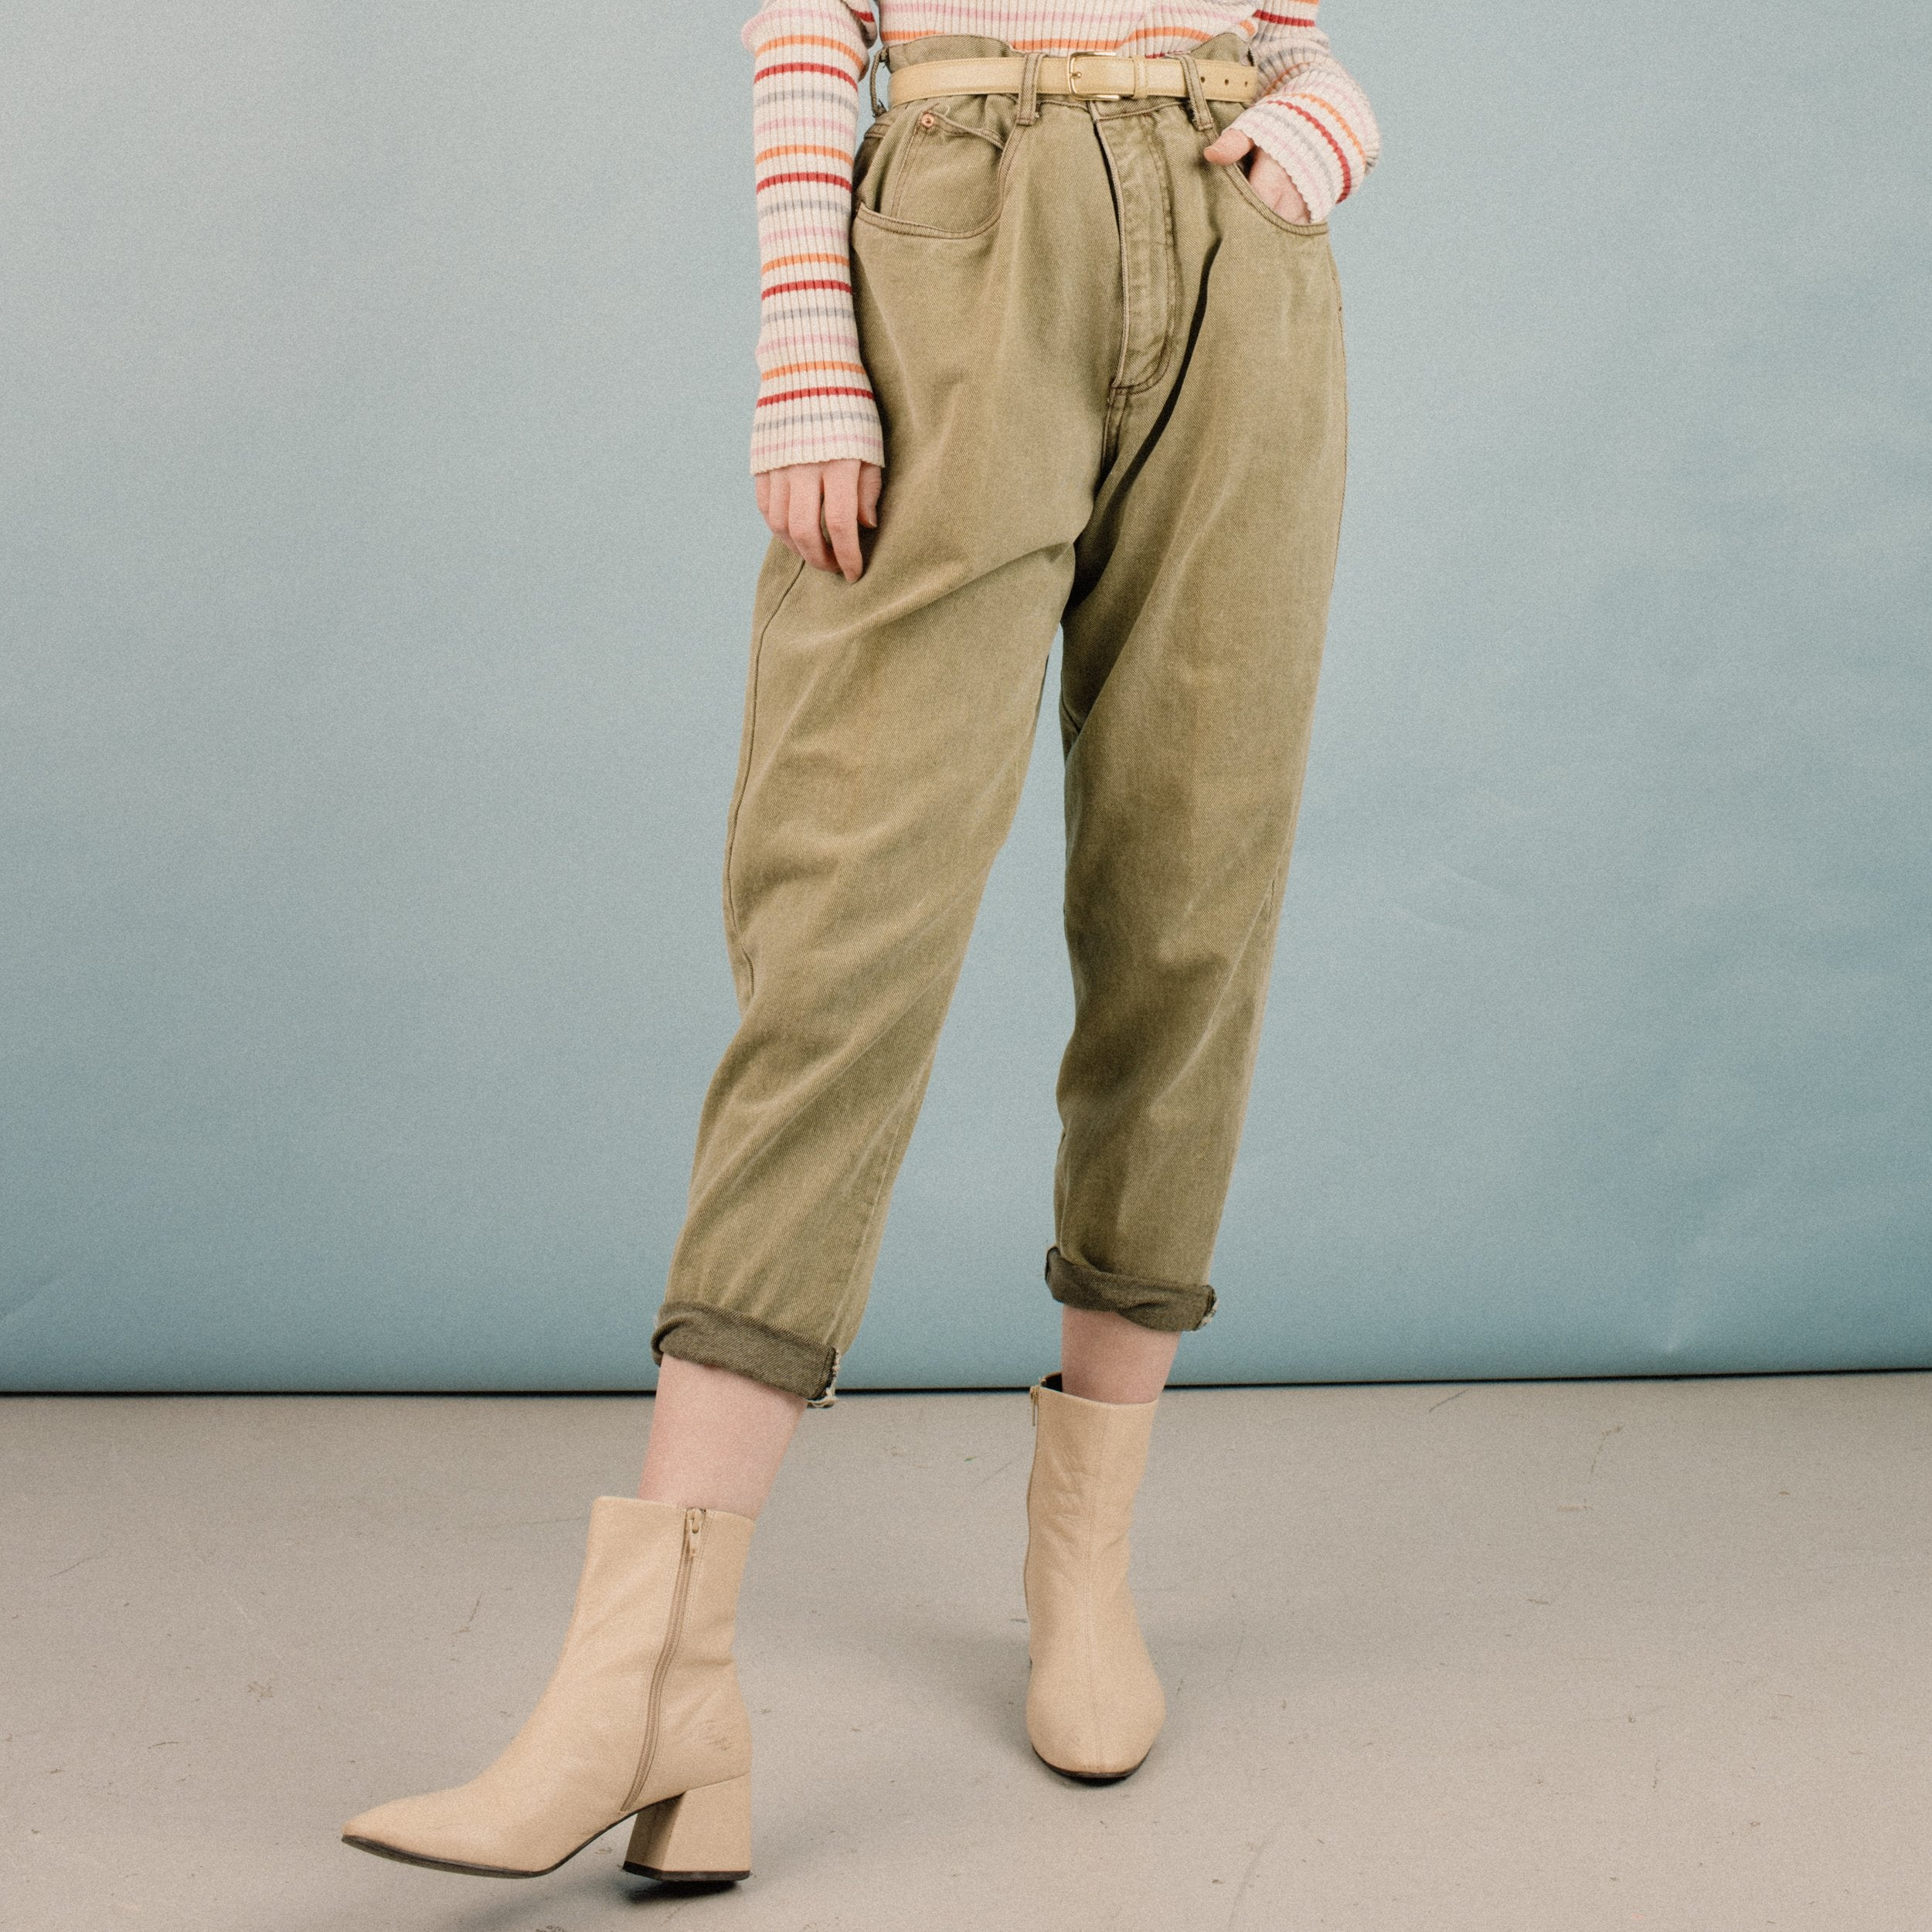 Vintage Pistachio Denim Pants / M/L